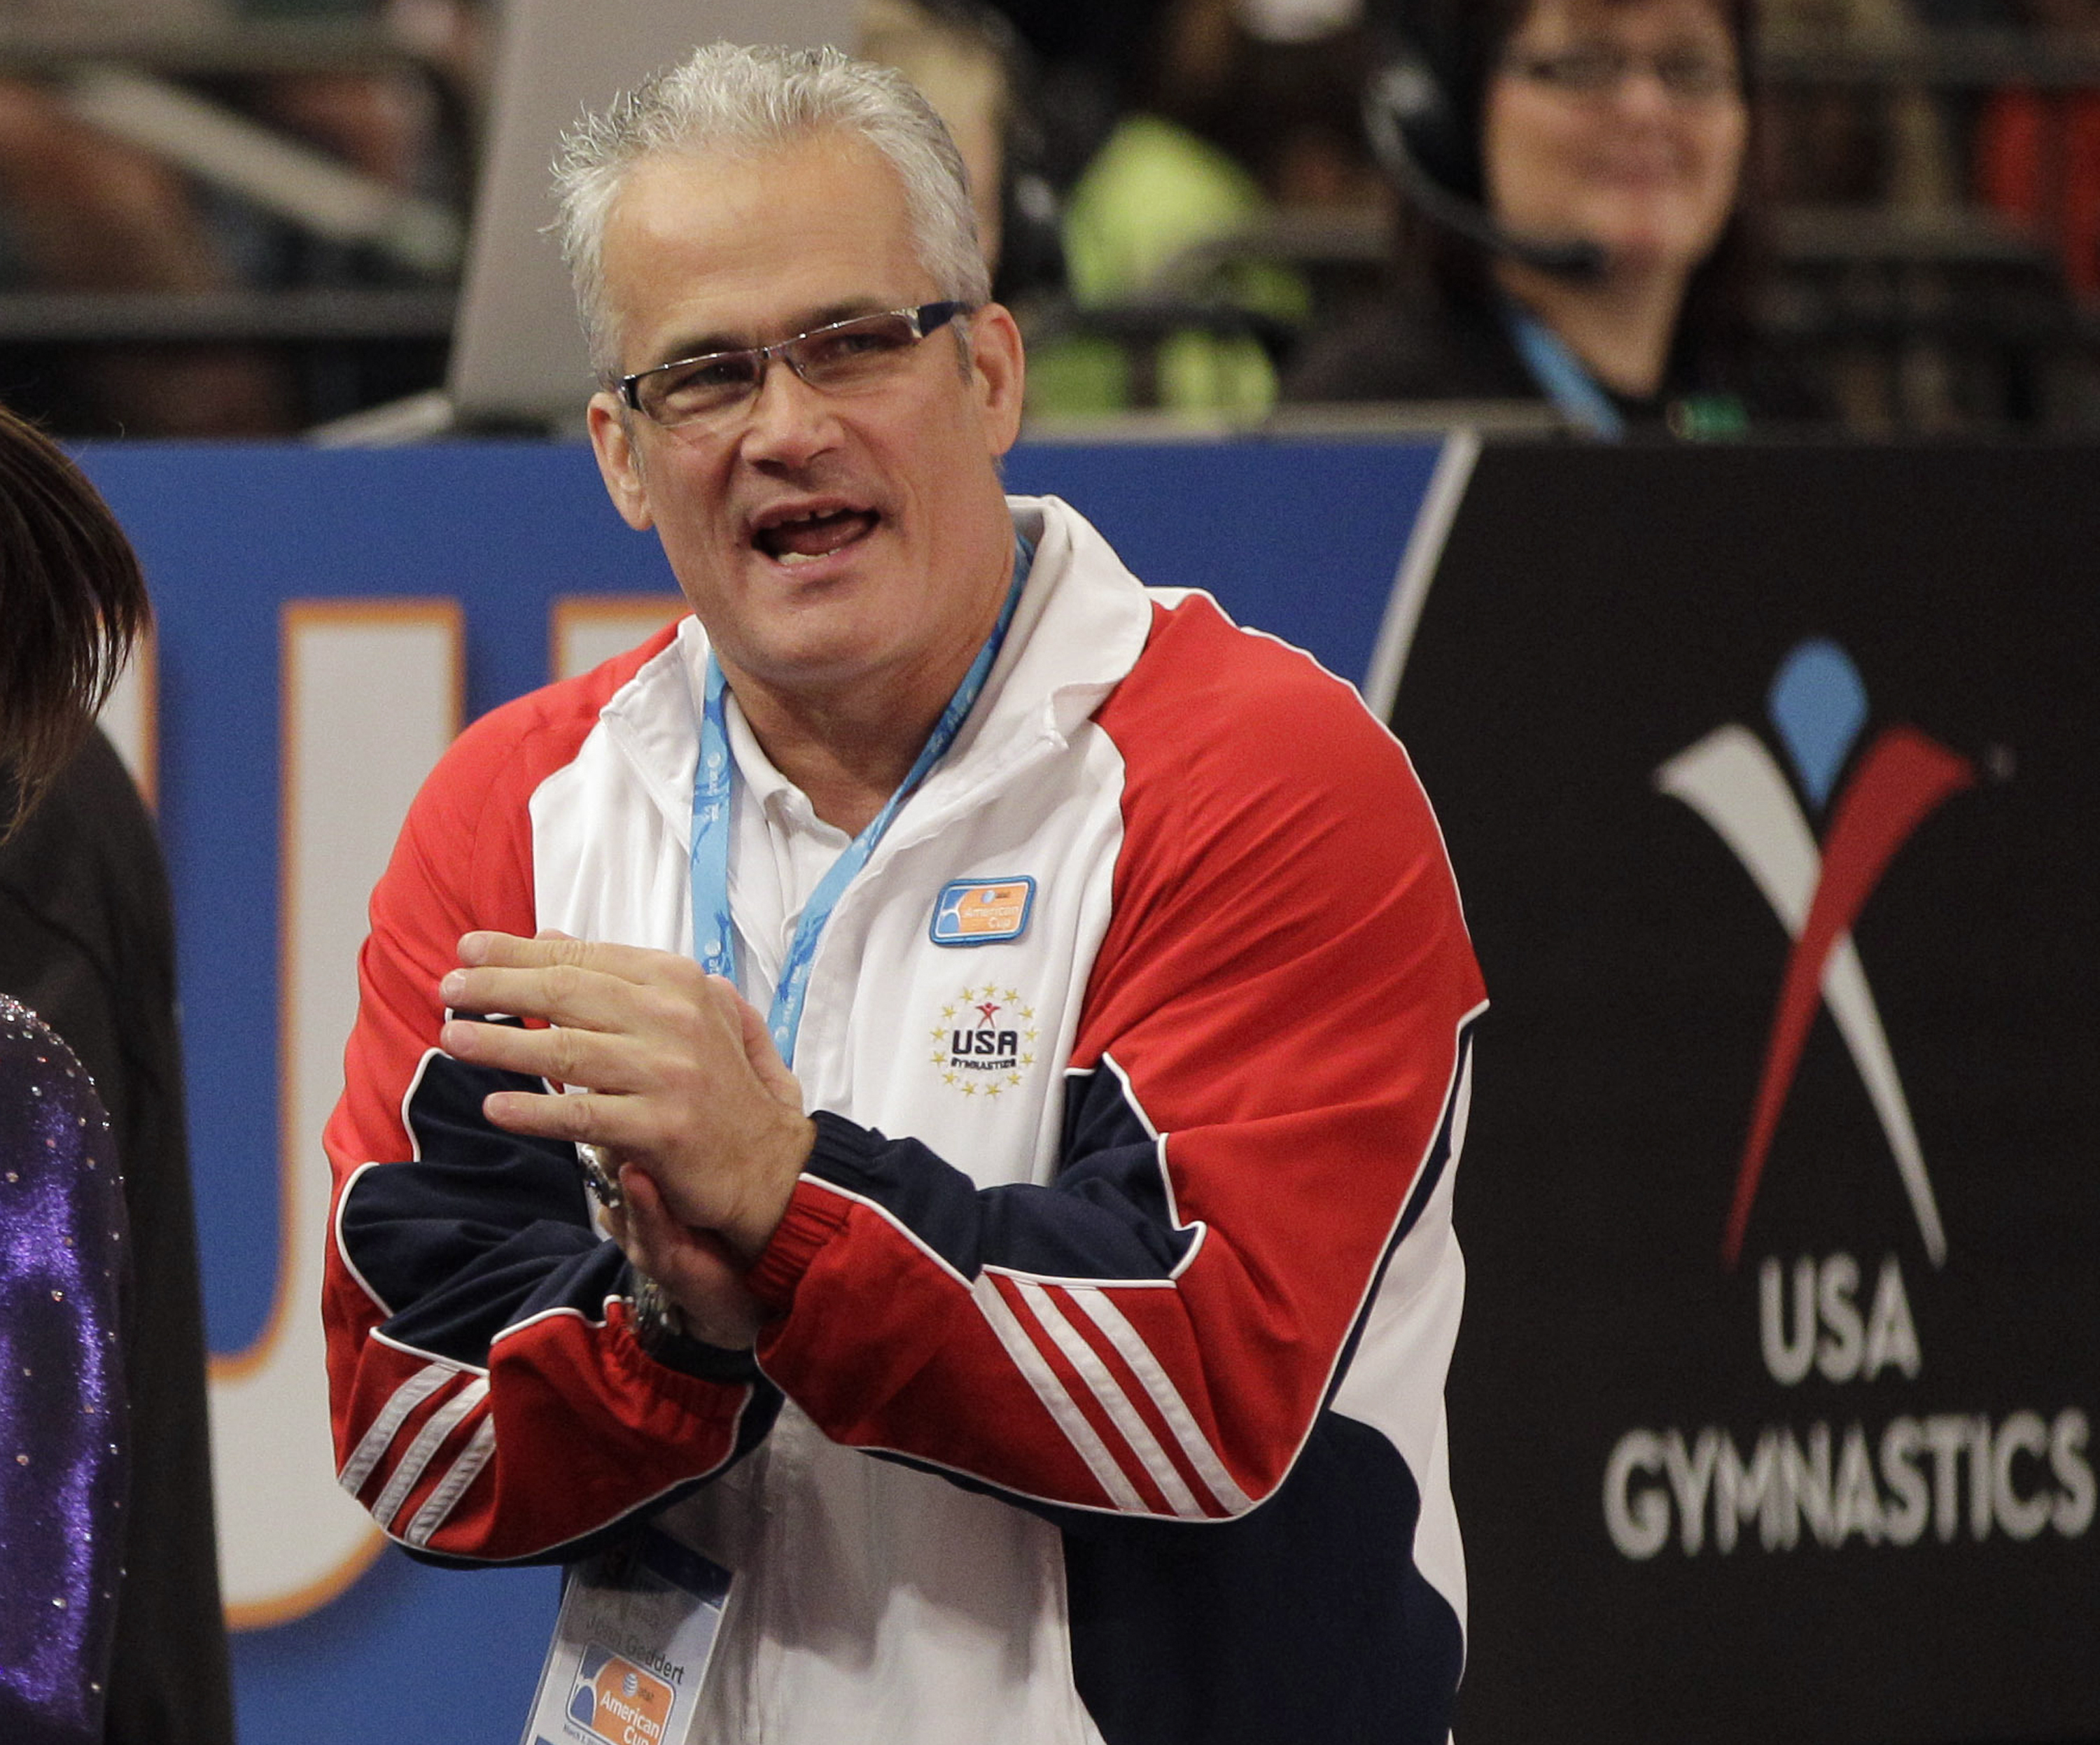 In this March 3, 2012, file photo, gymnastics coach John Geddert is seen at the American Cup gymnastics meet at Madison Square Garden in New York. Prosecutors in Michigan filed charges Thursday, Feb. 25, 2021, against Geddert, a former U.S. Olympics gymnastics coach with ties to disgraced sports doctor Larry Nassar. Geddert was head coach of the 2012 U.S. women's Olympic gymnastics team, which won a gold medal.